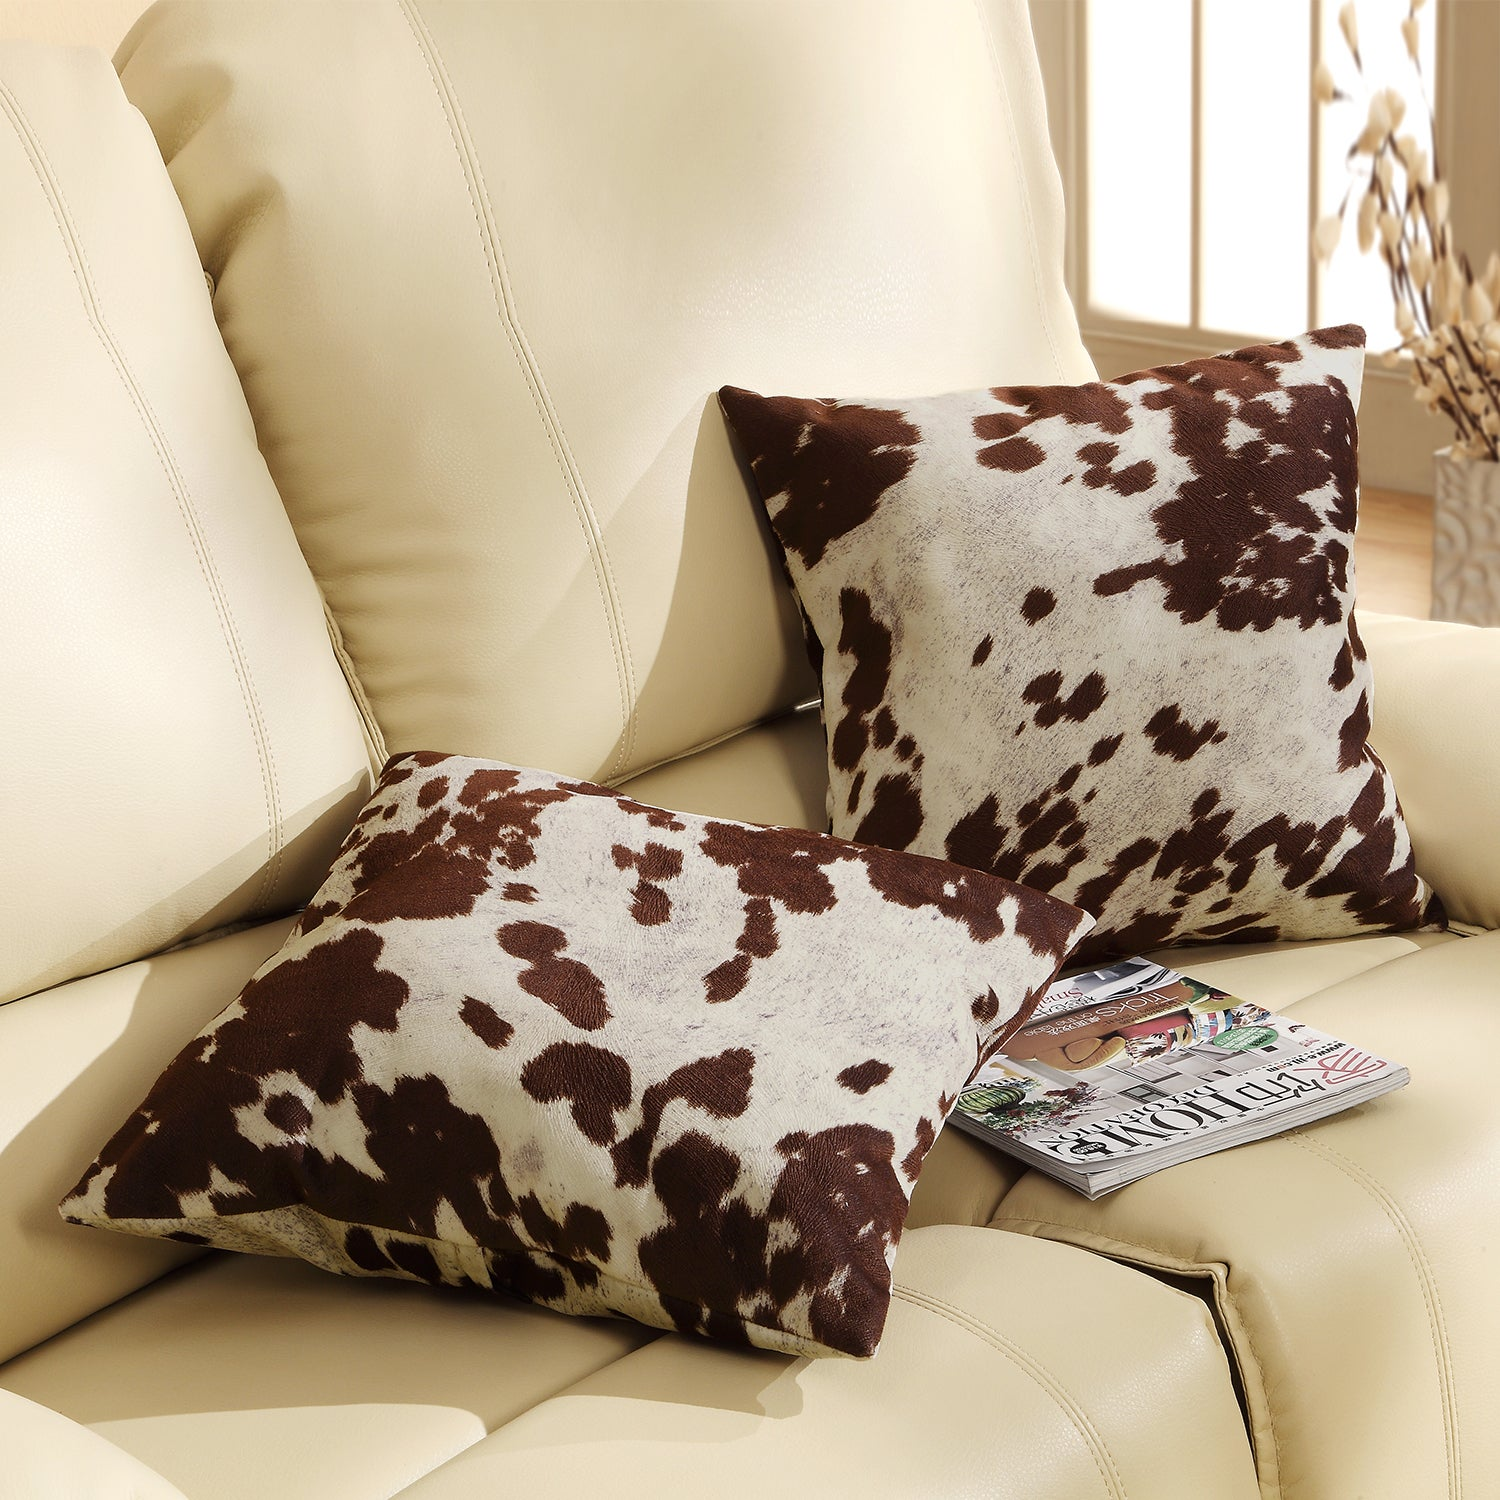 Cow Print 18 Inch Throw Pillows Set Of 2 Country Rustic Farmhouse Sofa Bed Decor